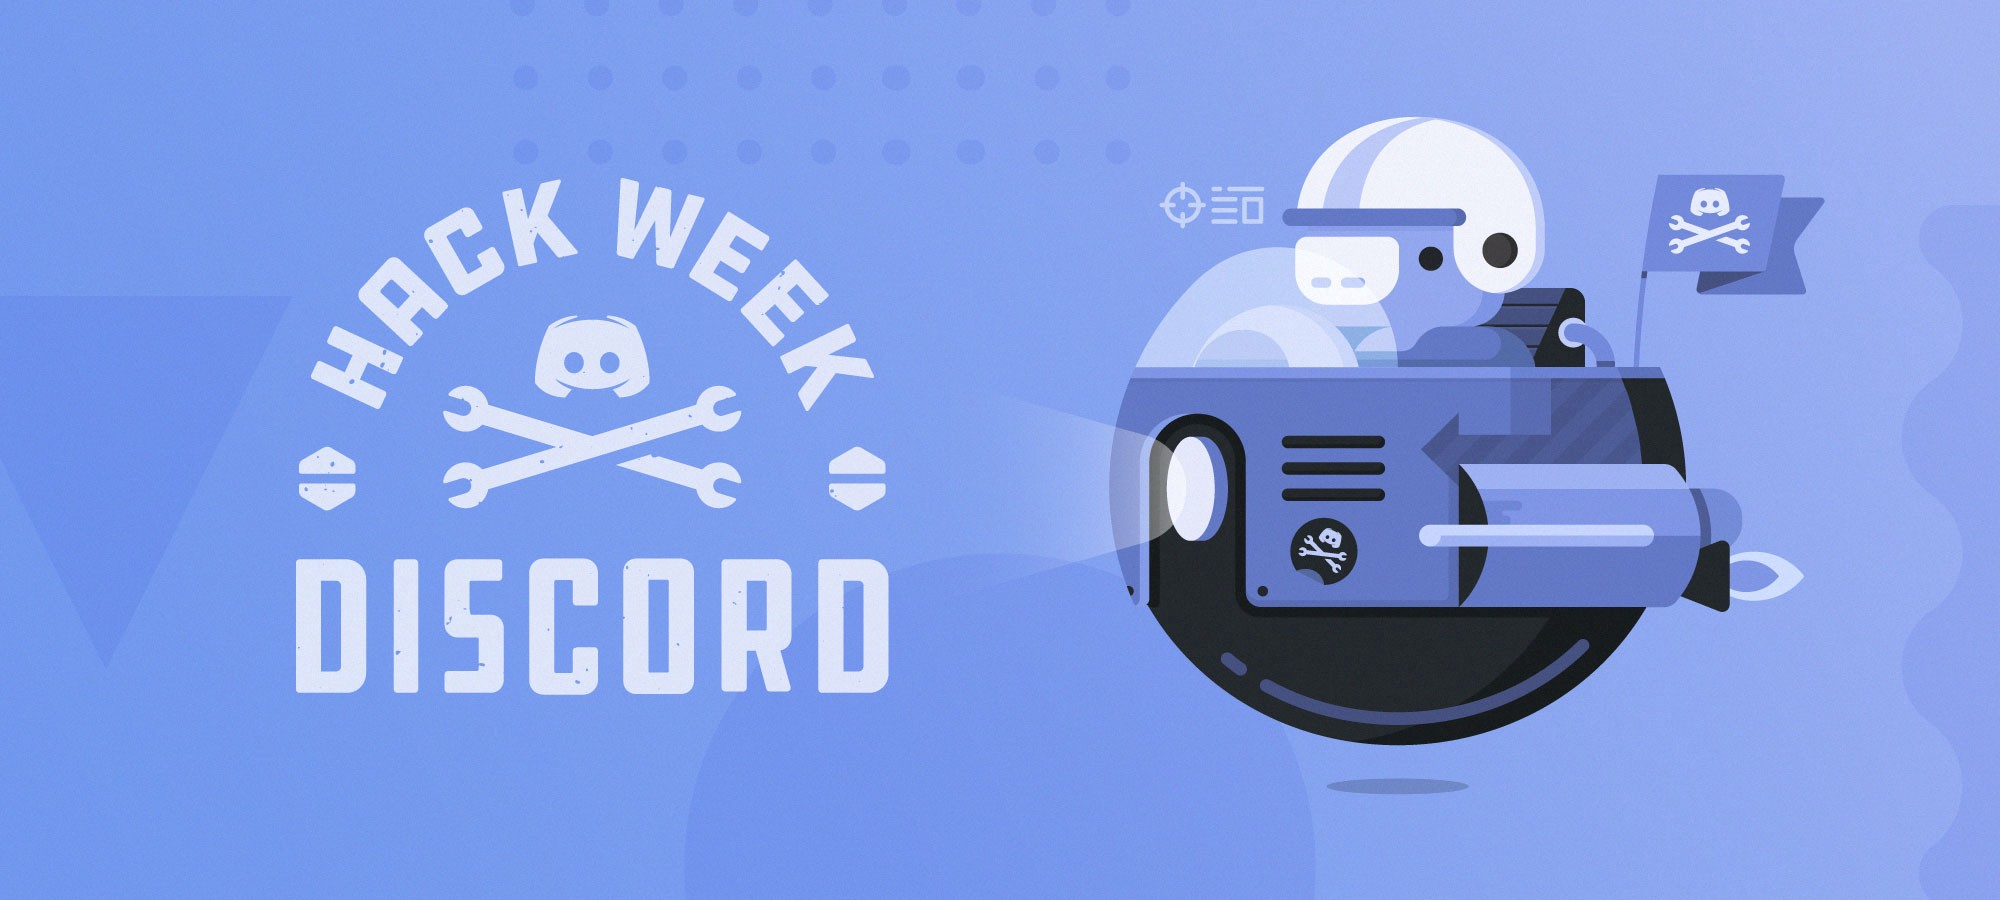 Discord Community Hack Week! Build and create alongside us